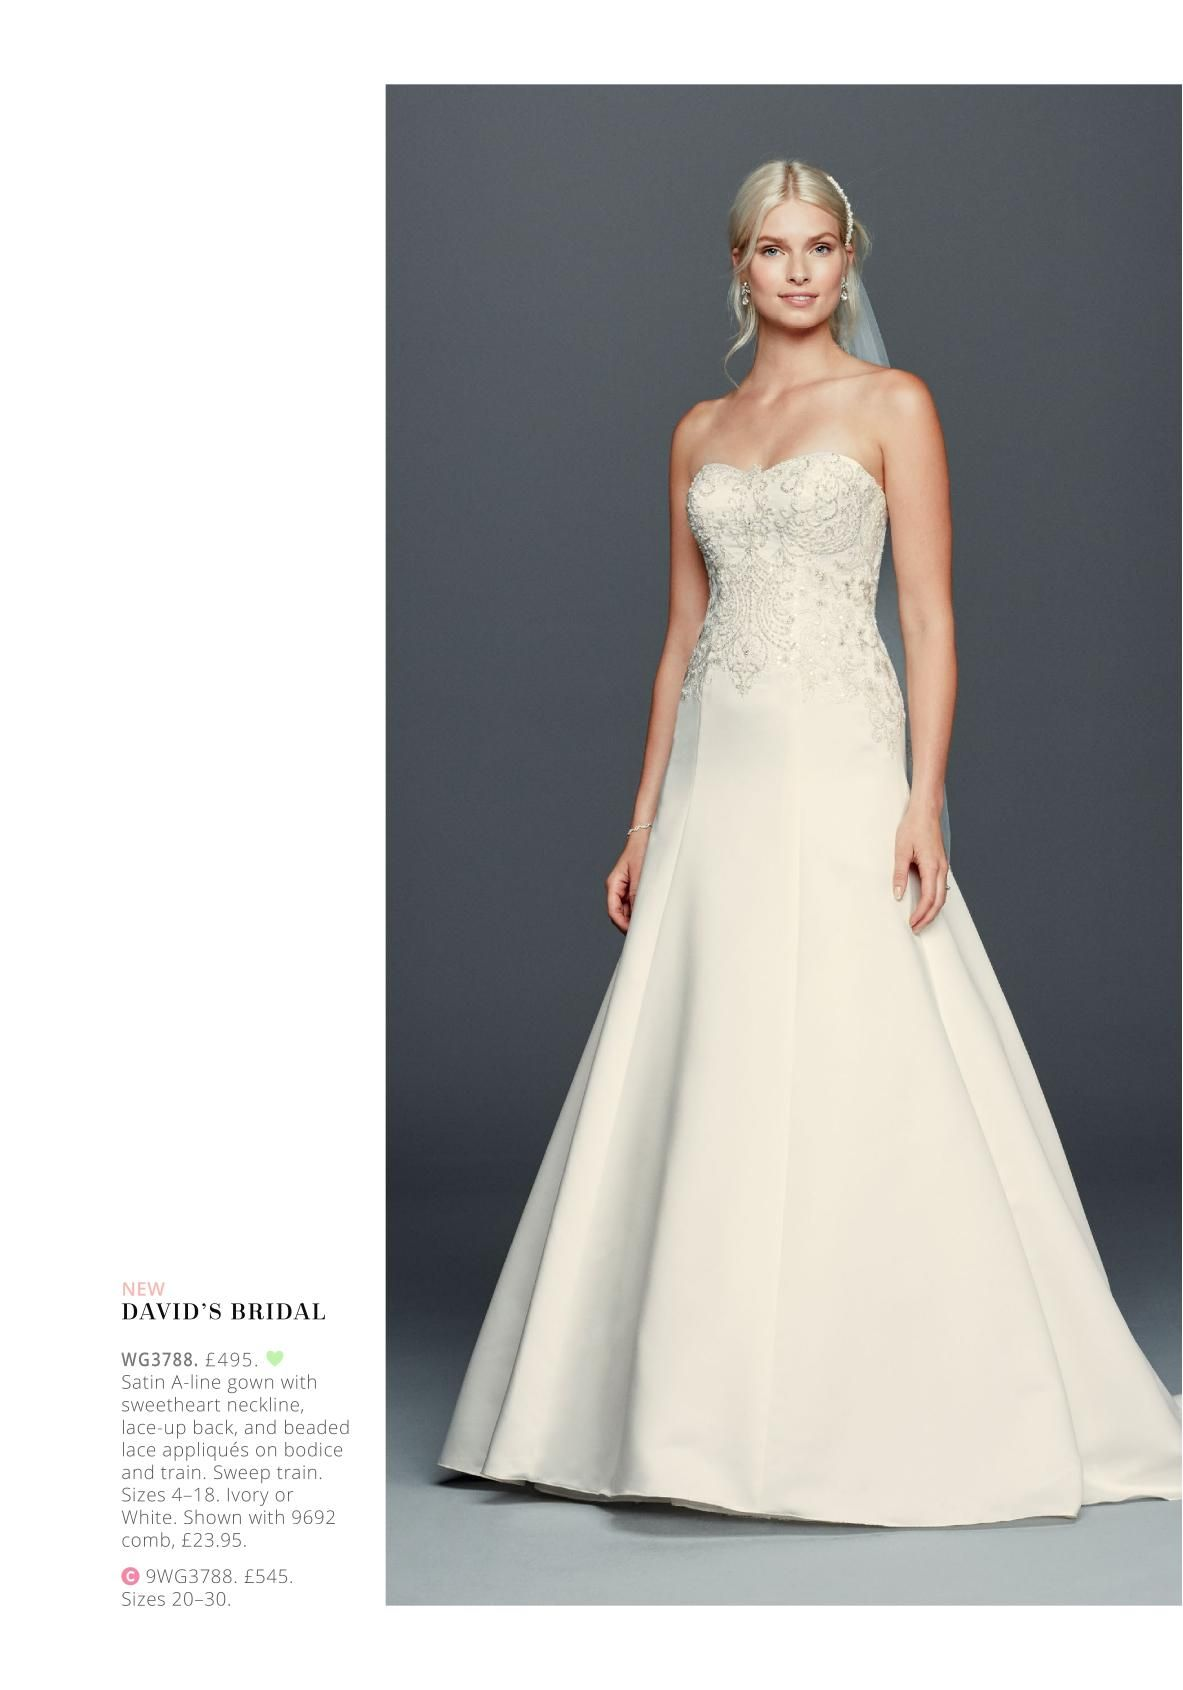 Davidus bridal online catalog letus get married dress pinterest